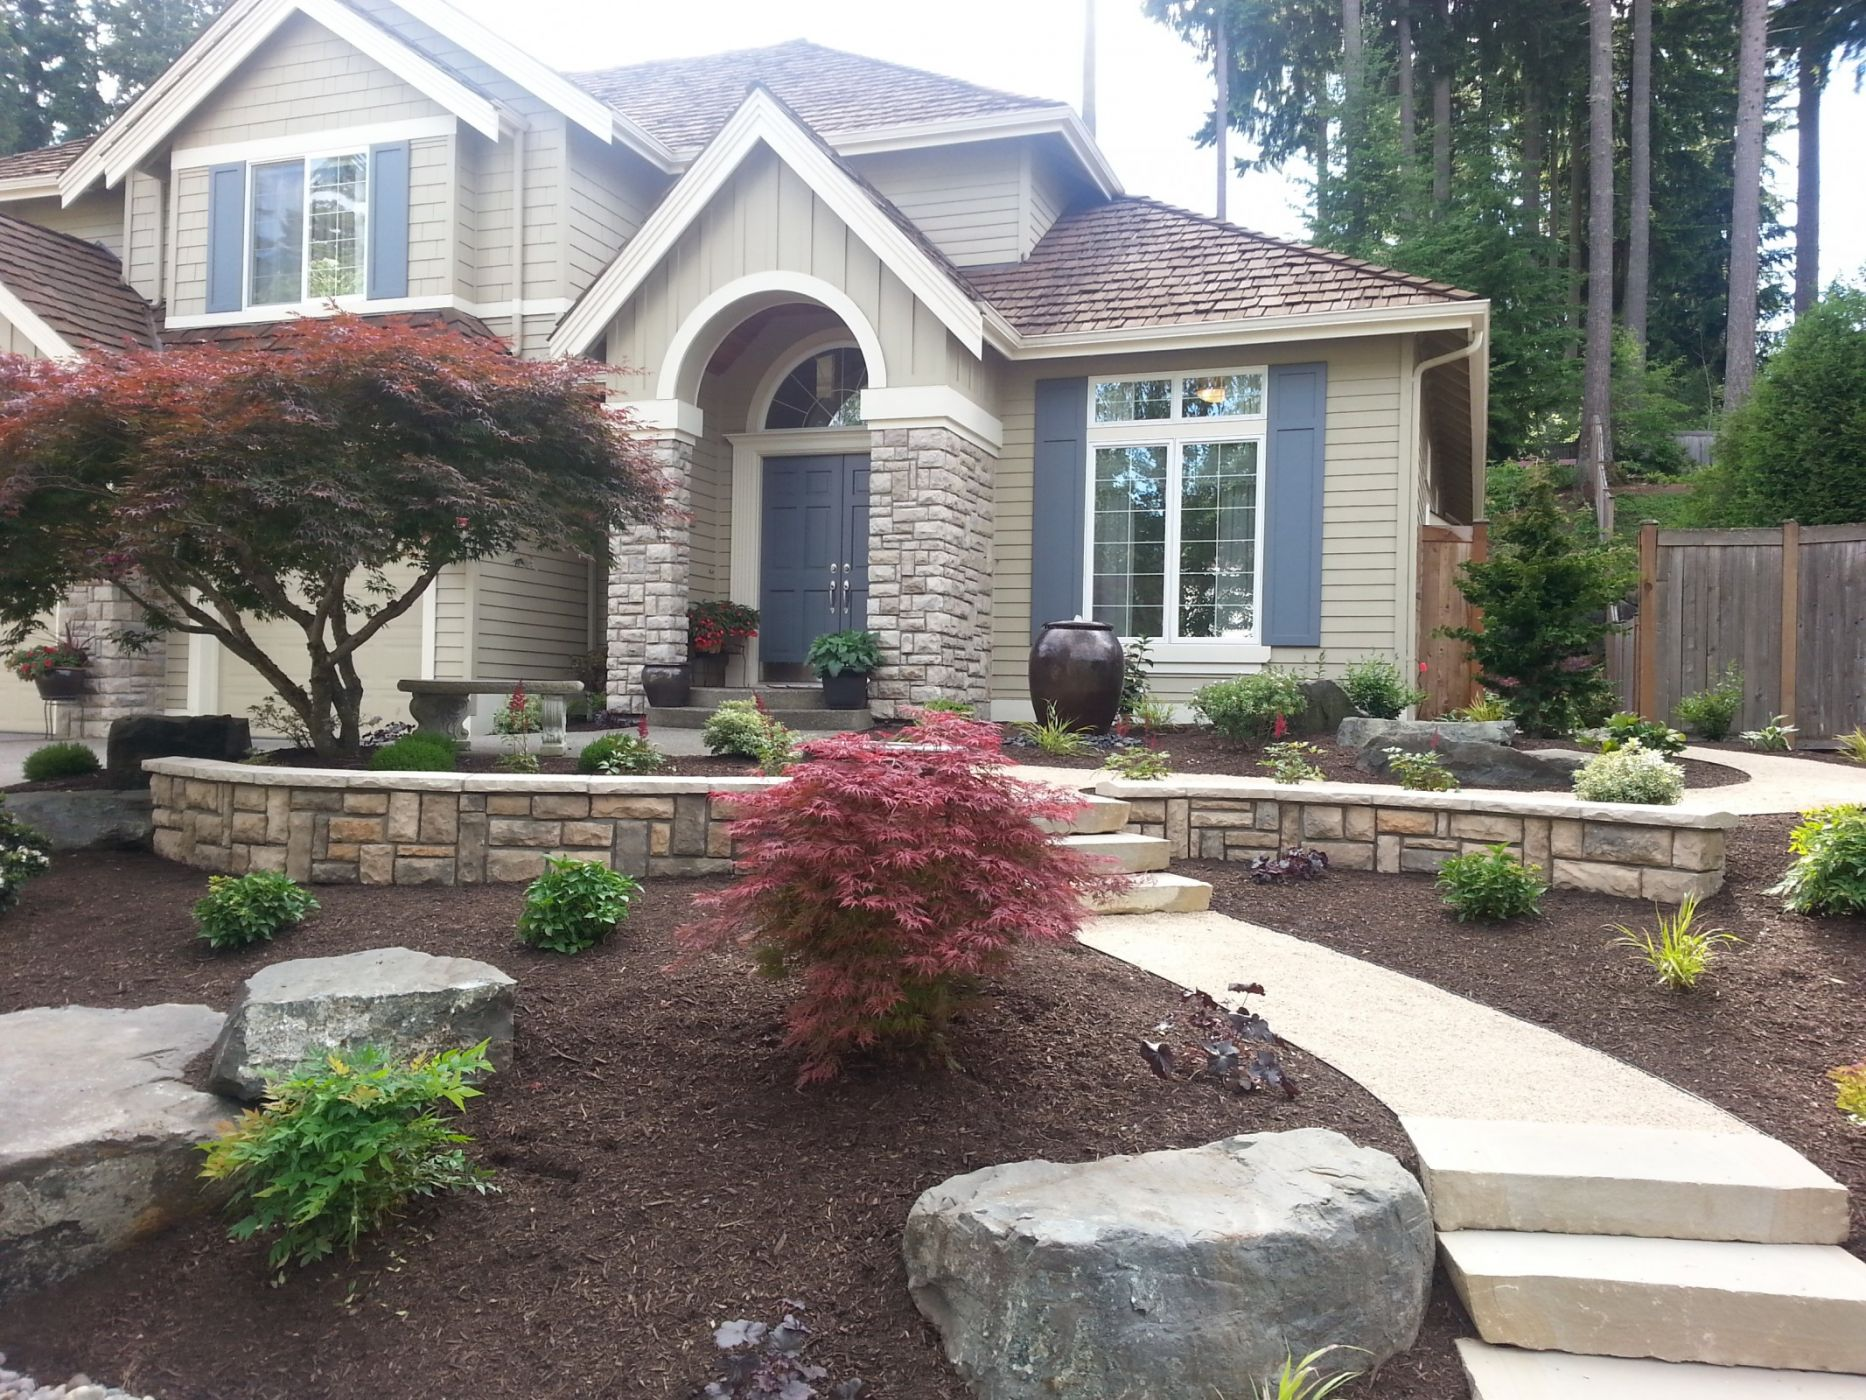 Janika landscaping ideas front yard illinois here for Garden in front of house